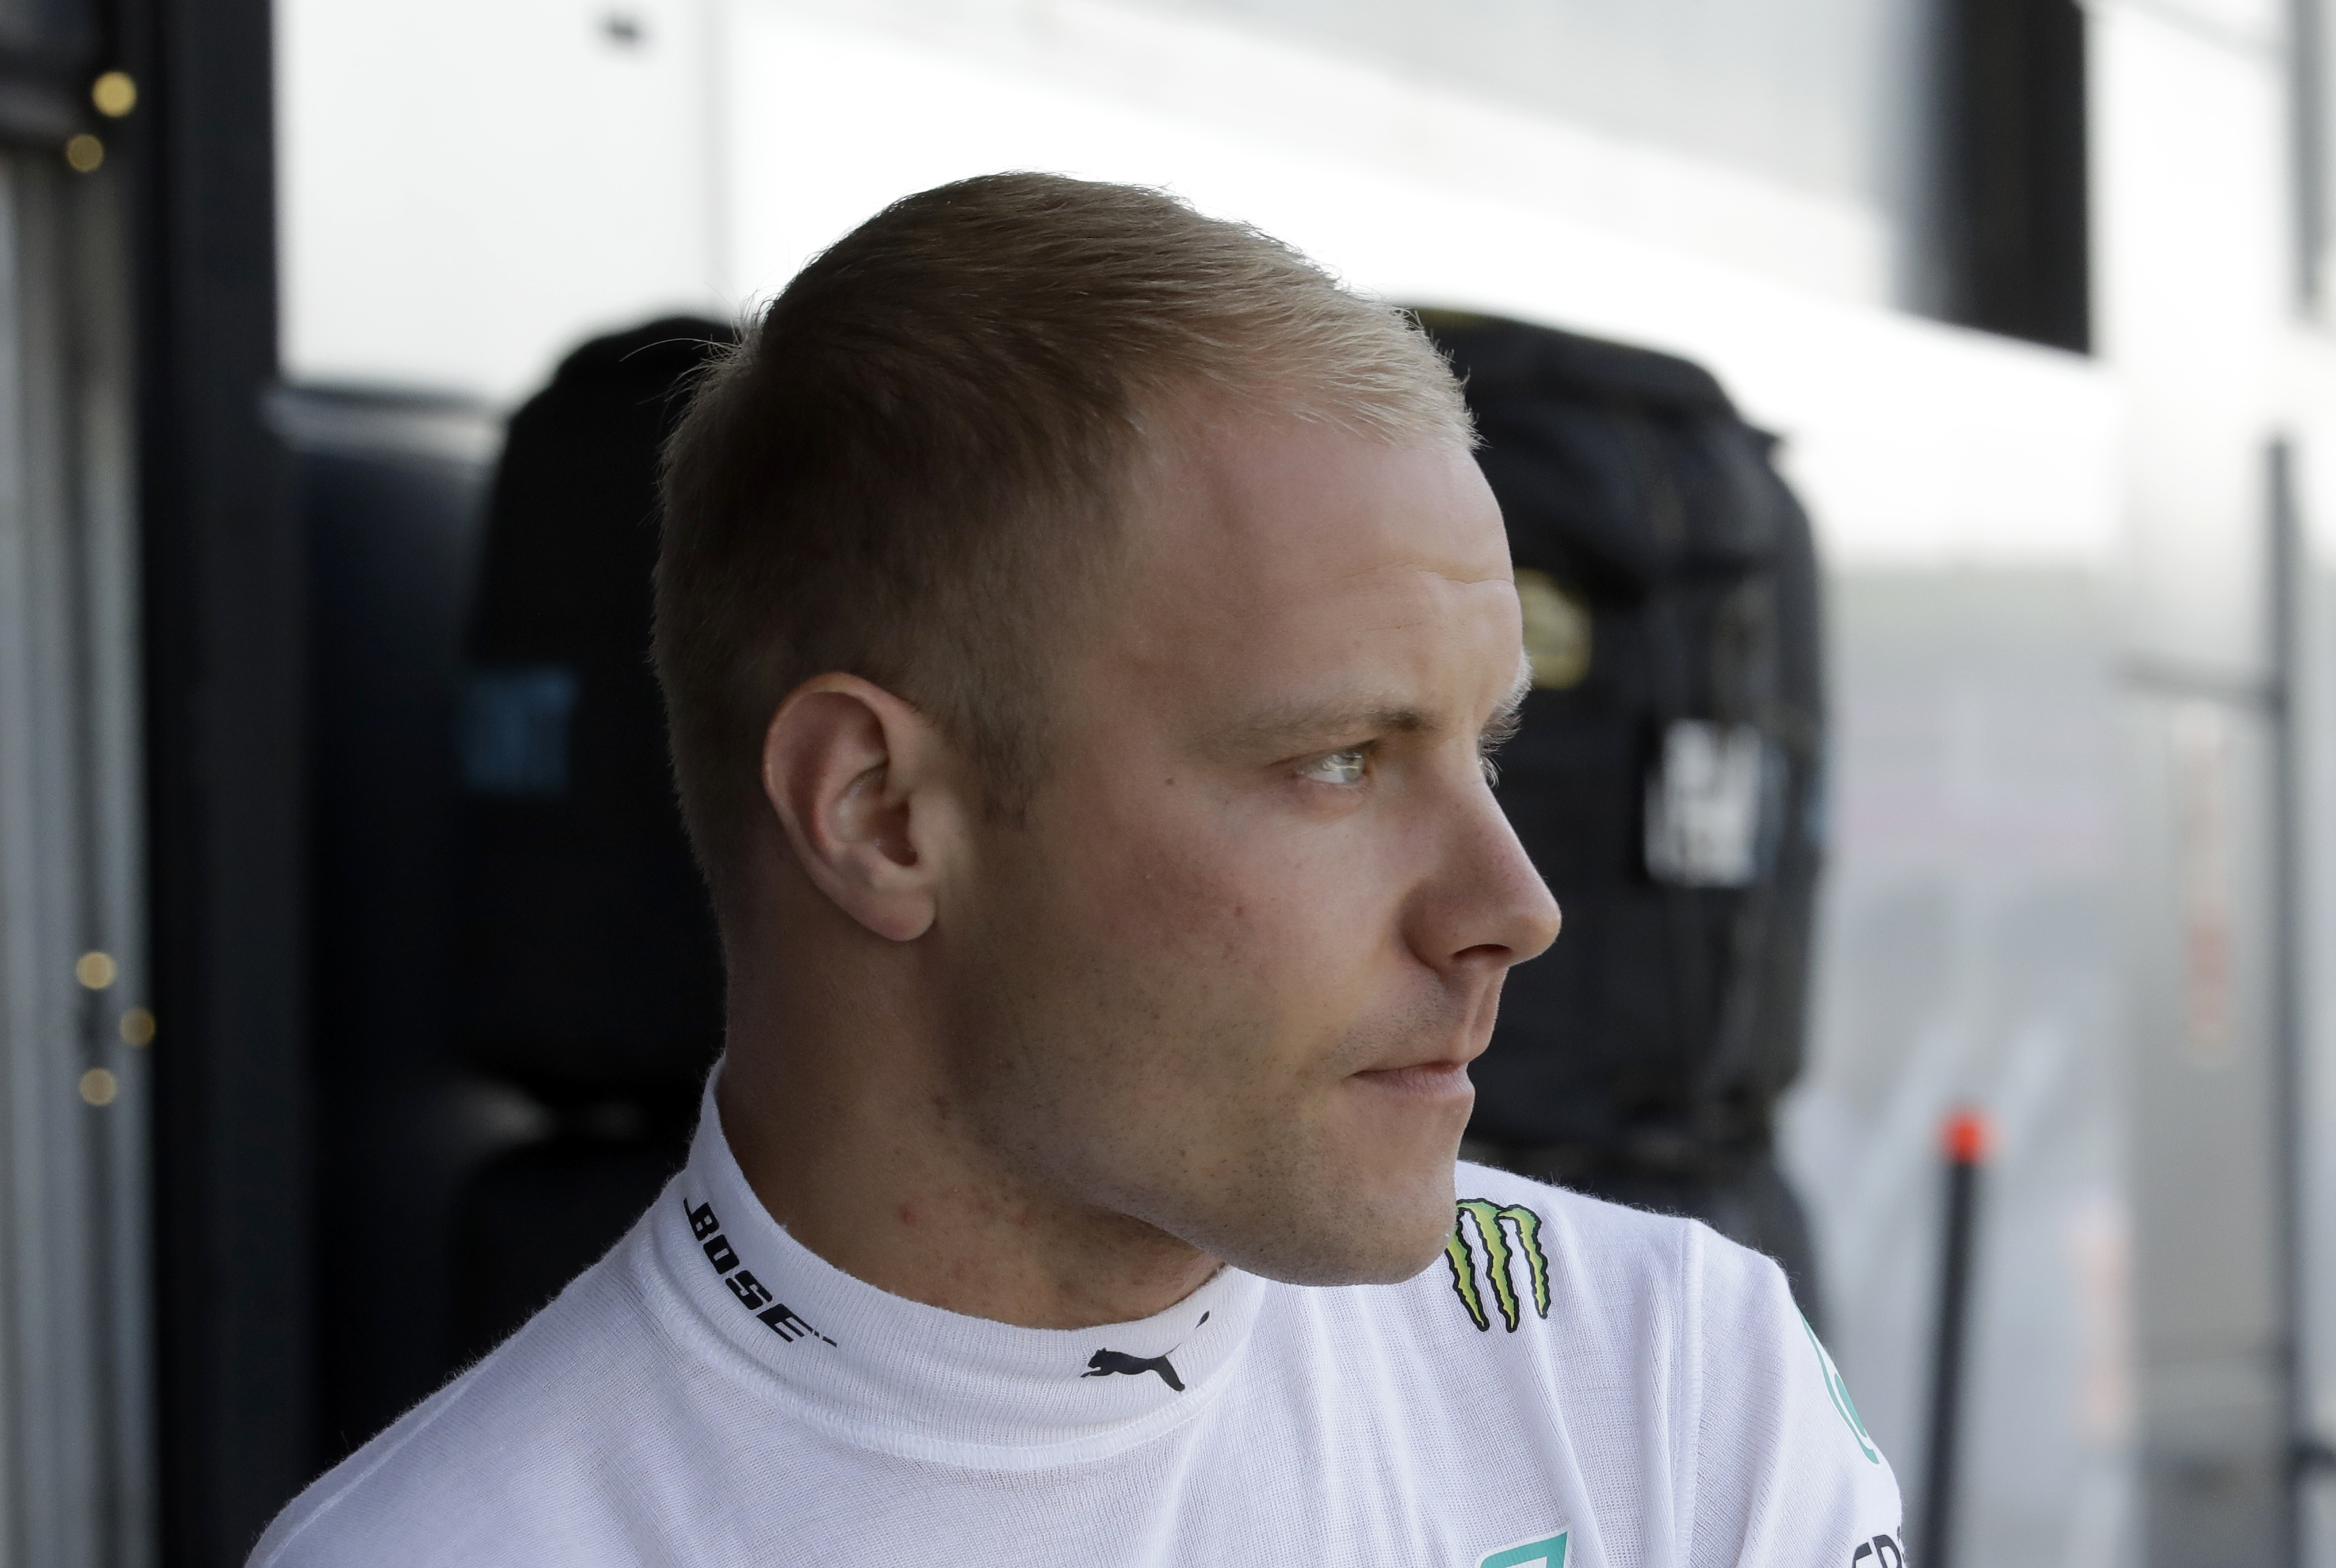 Mercedes driver Valtteri Bottas of Finland waits for the second free practice at the Silverstone racetrack, Silverstone, England, Friday, July 6, 2018. The British Formula One Grand Prix will be held on Sunday July 8. (AP Photo/Luca Bruno)